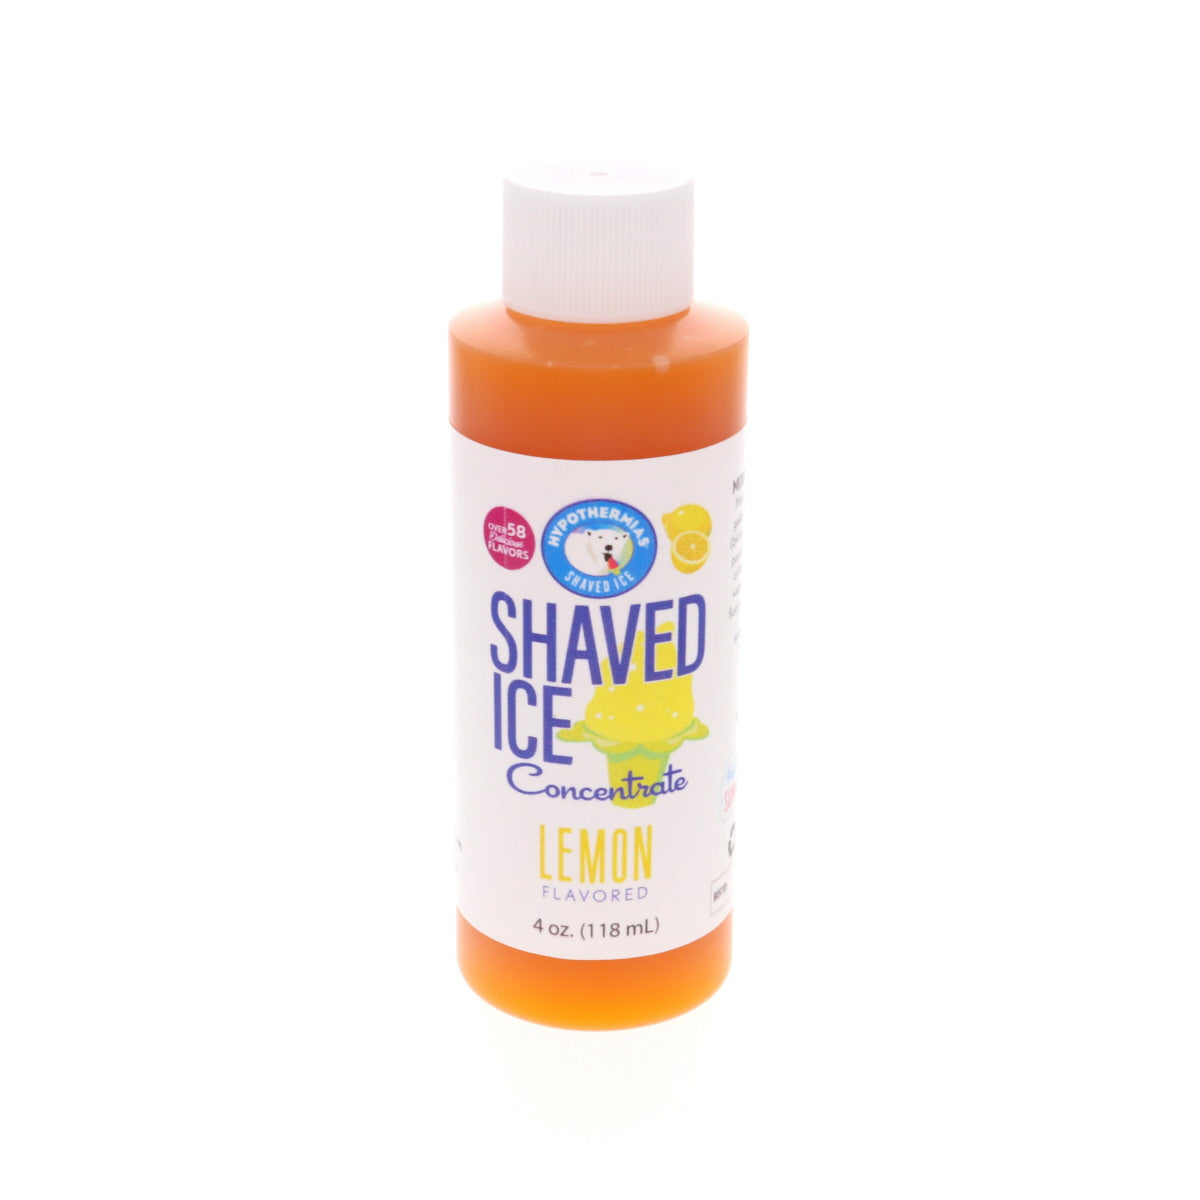 lemon shaved ice syrup concentrate 4 Fl Oz